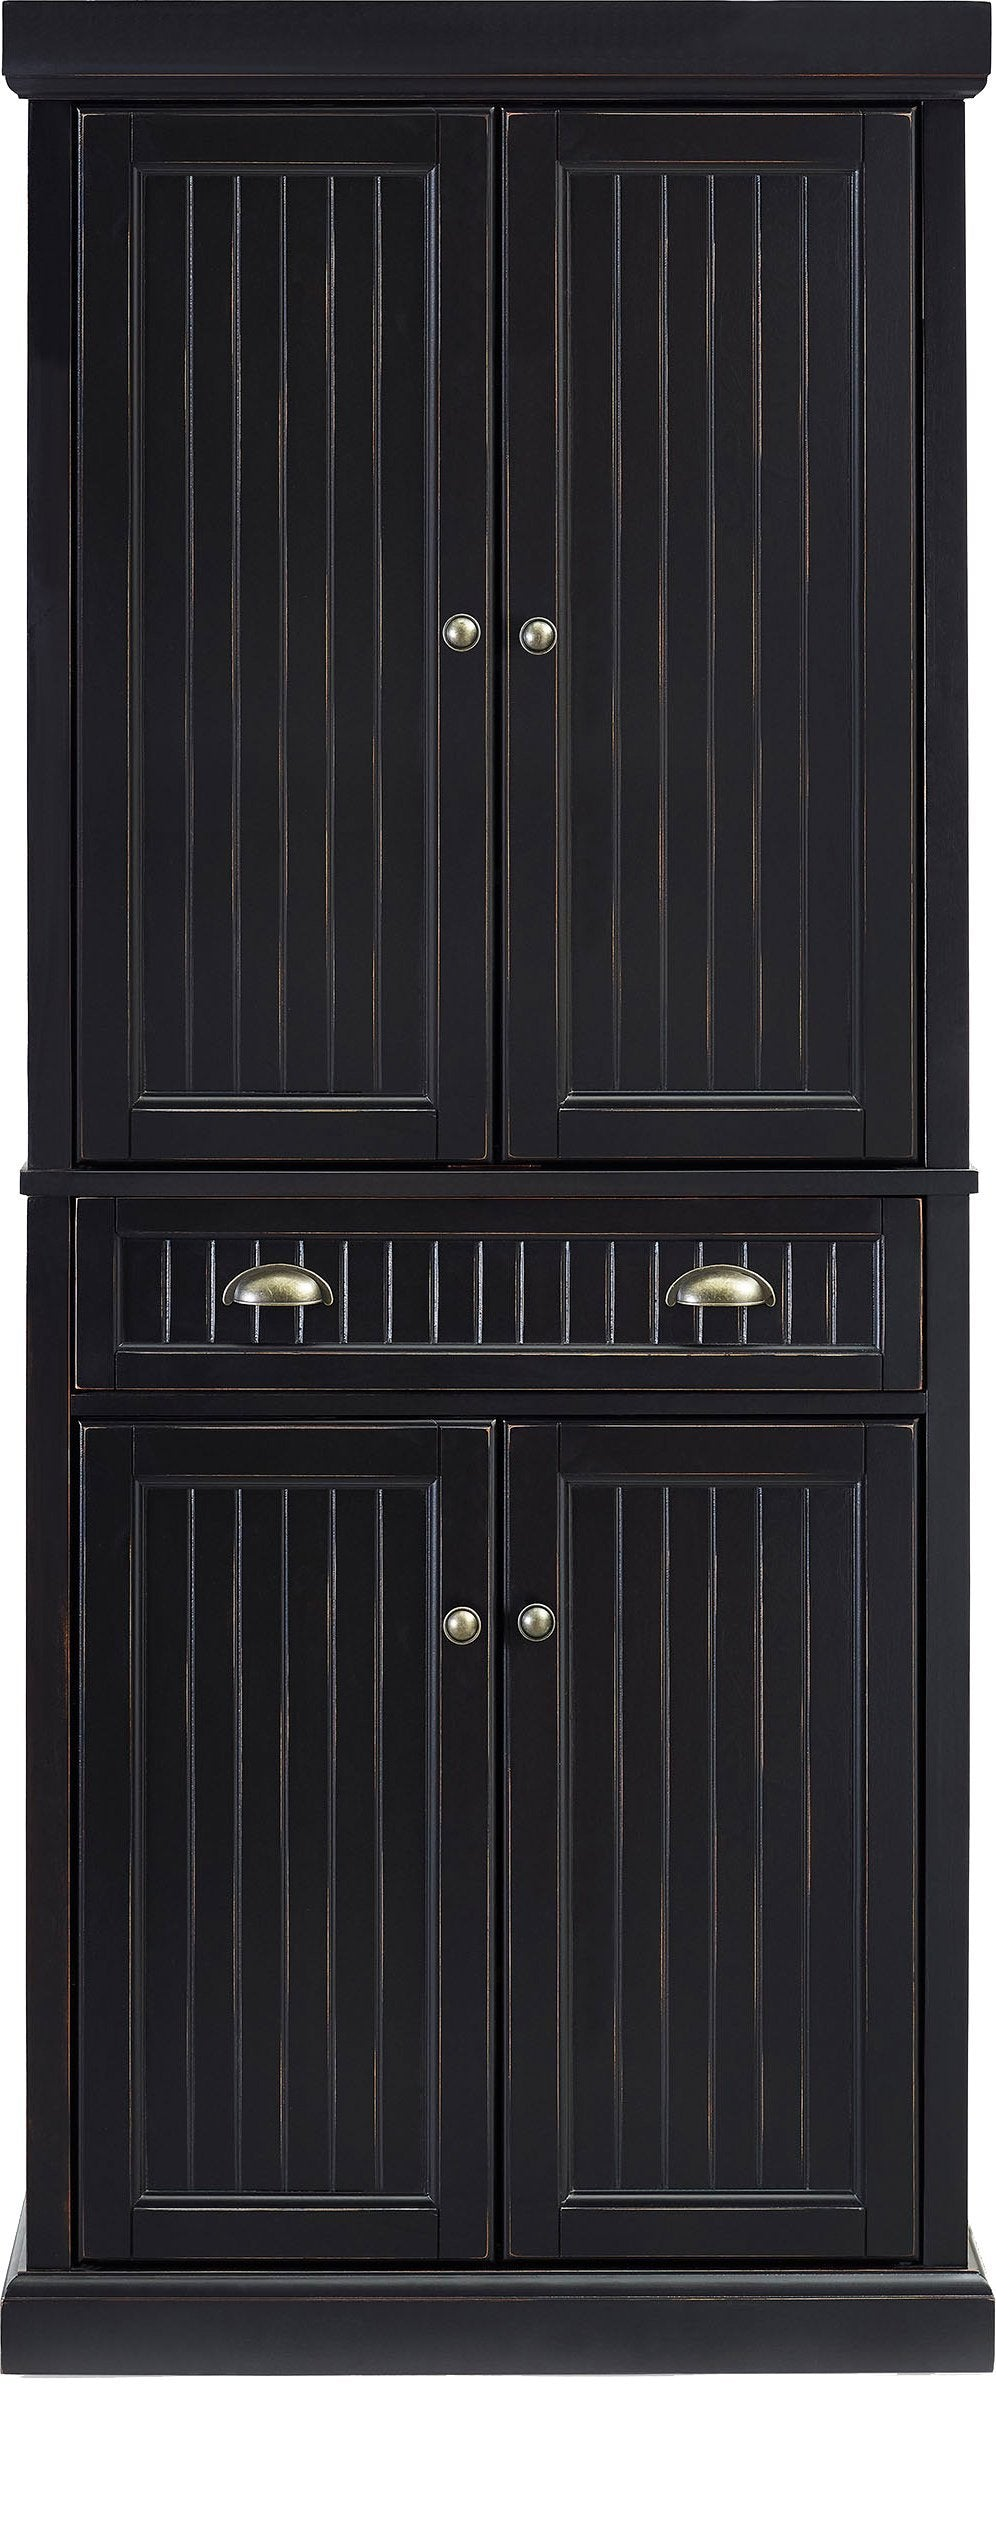 The best crosley furniture seaside kitchen pantry cabinet distressed black